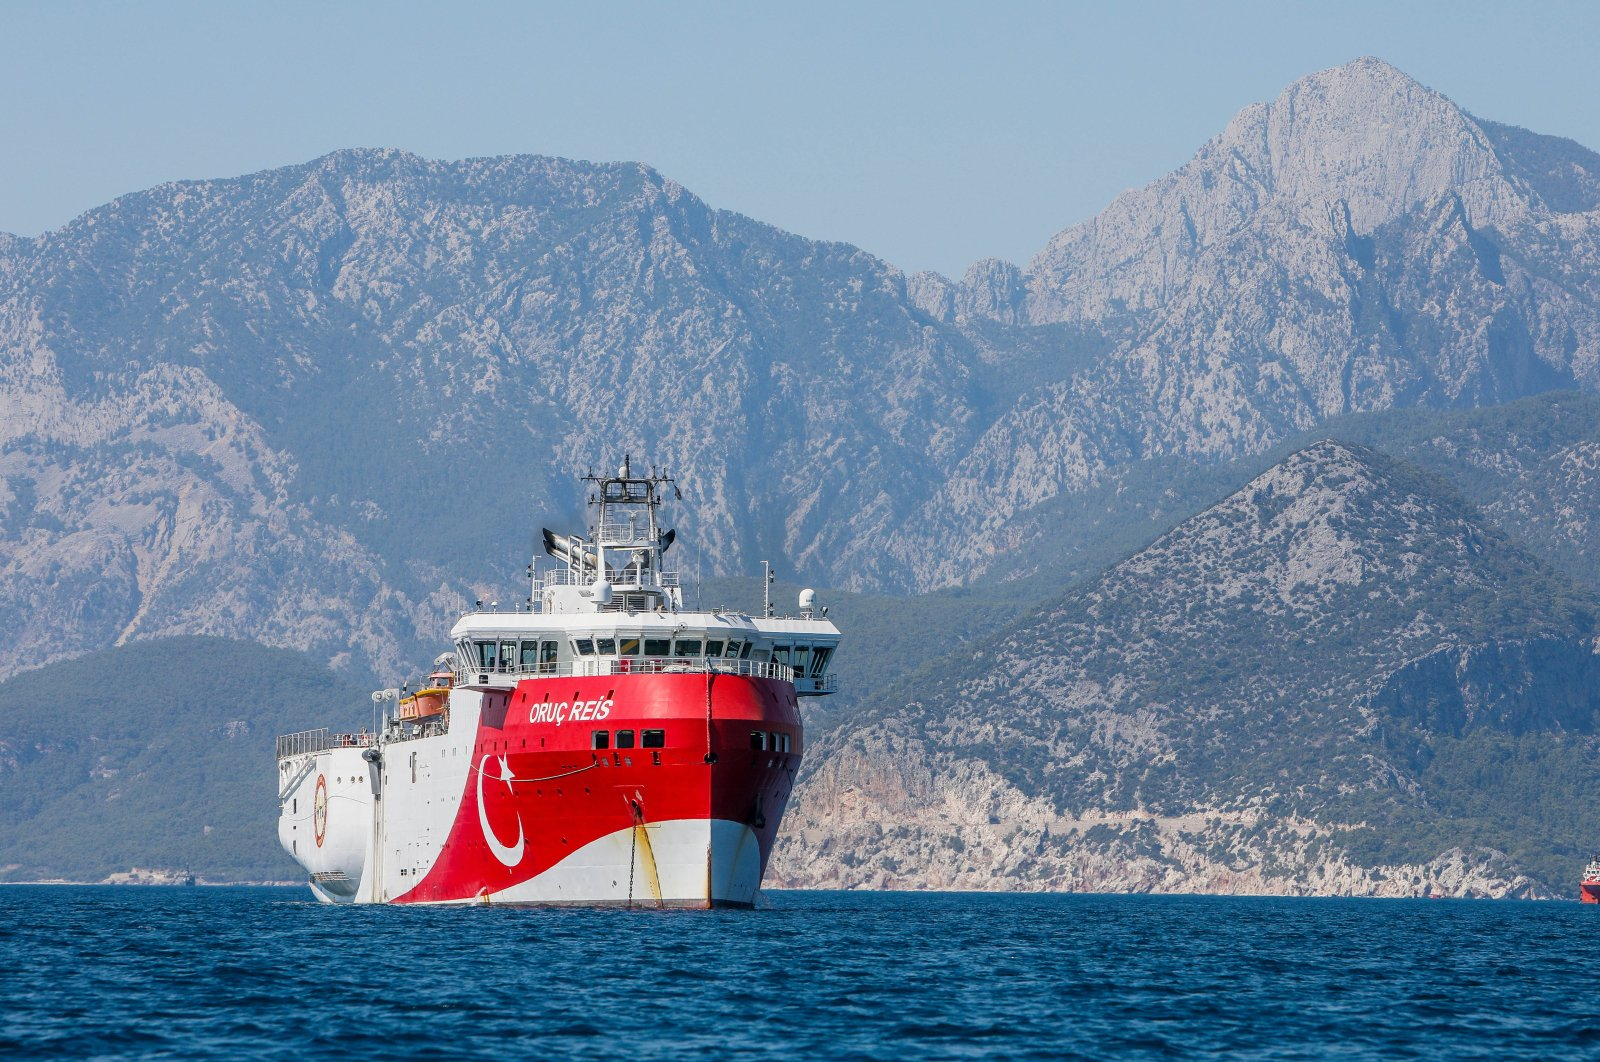 Turkey's seismic exploration vessel Oruç Reis is seen off the shore of Antalya, southern Turkey, July 23, 2020. (DHA Photo)